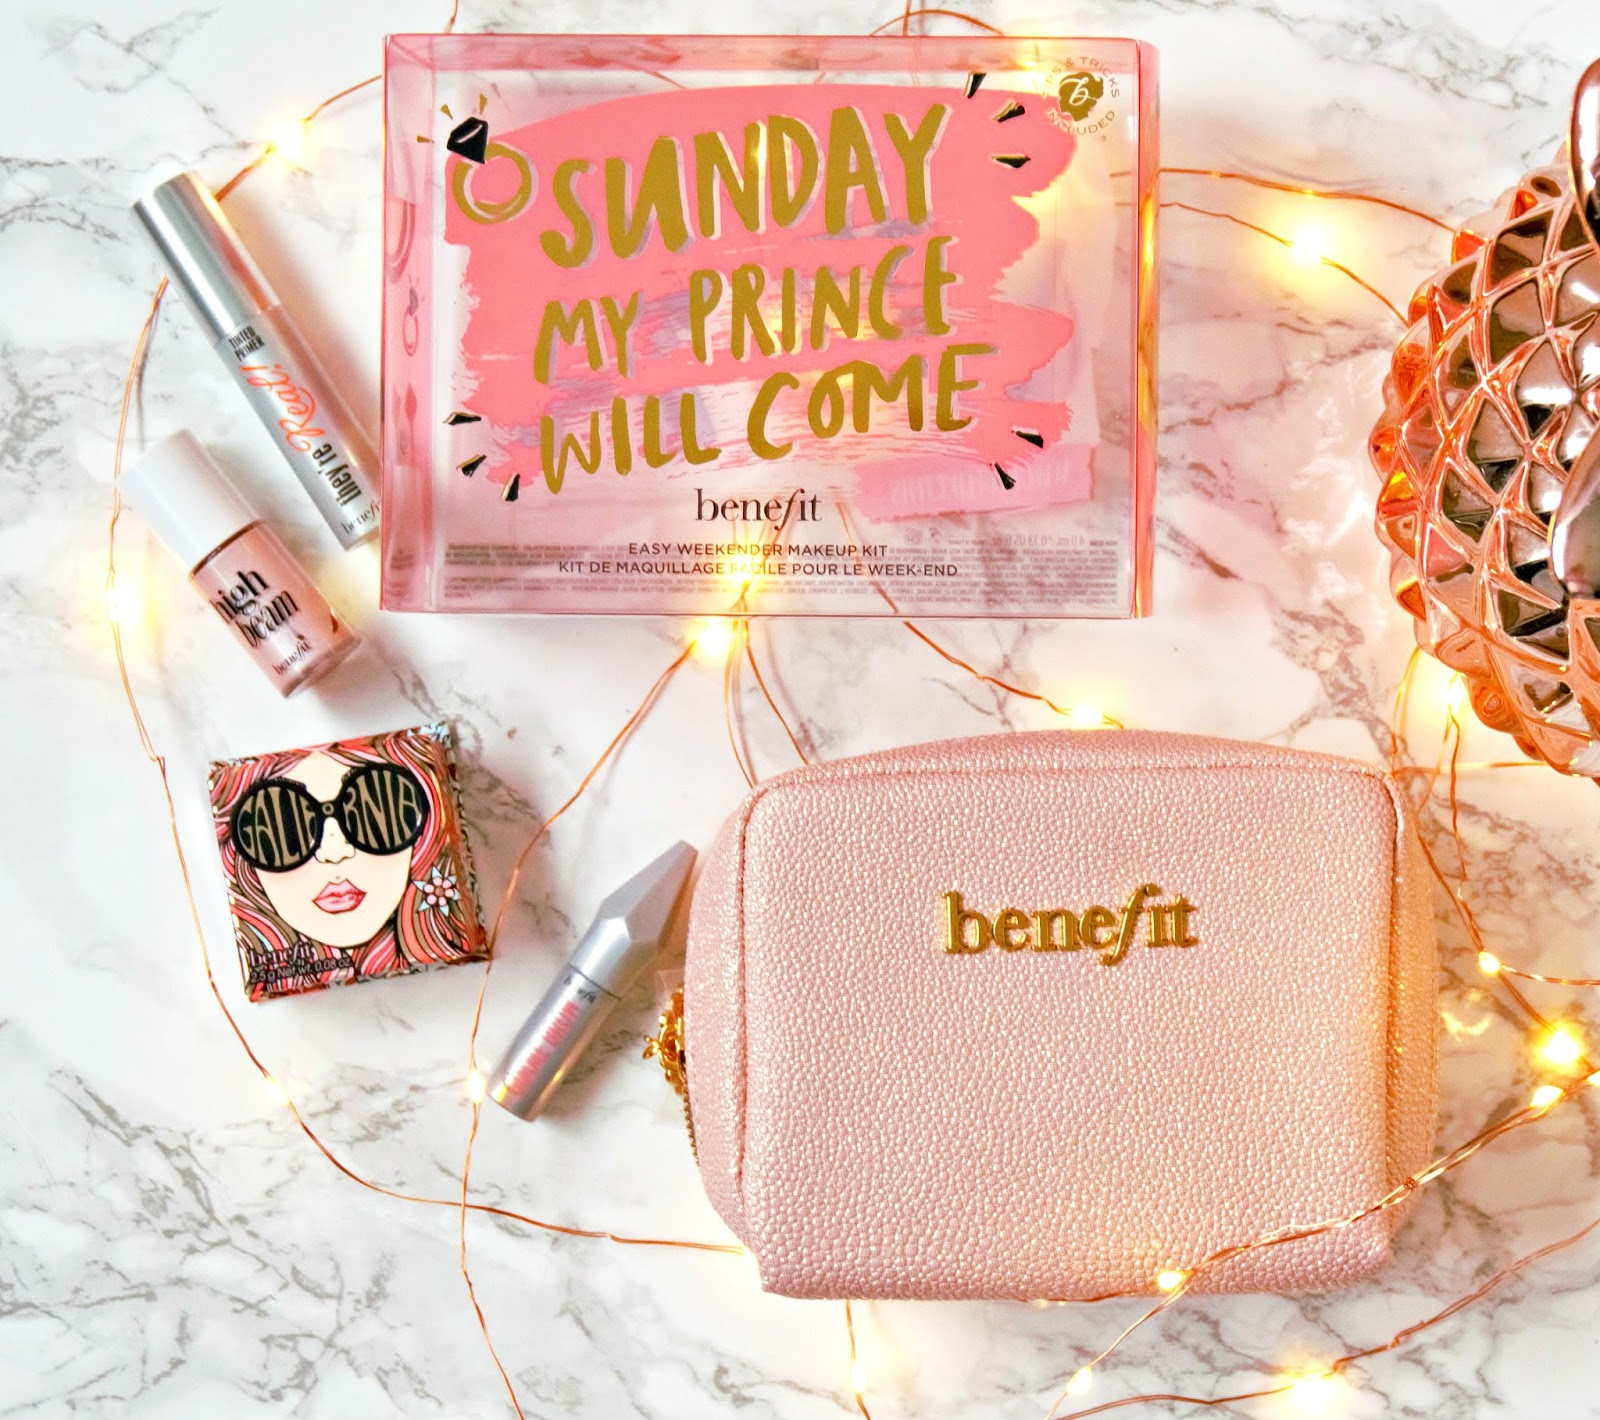 Benefit Sunday My Prince Will Come Review